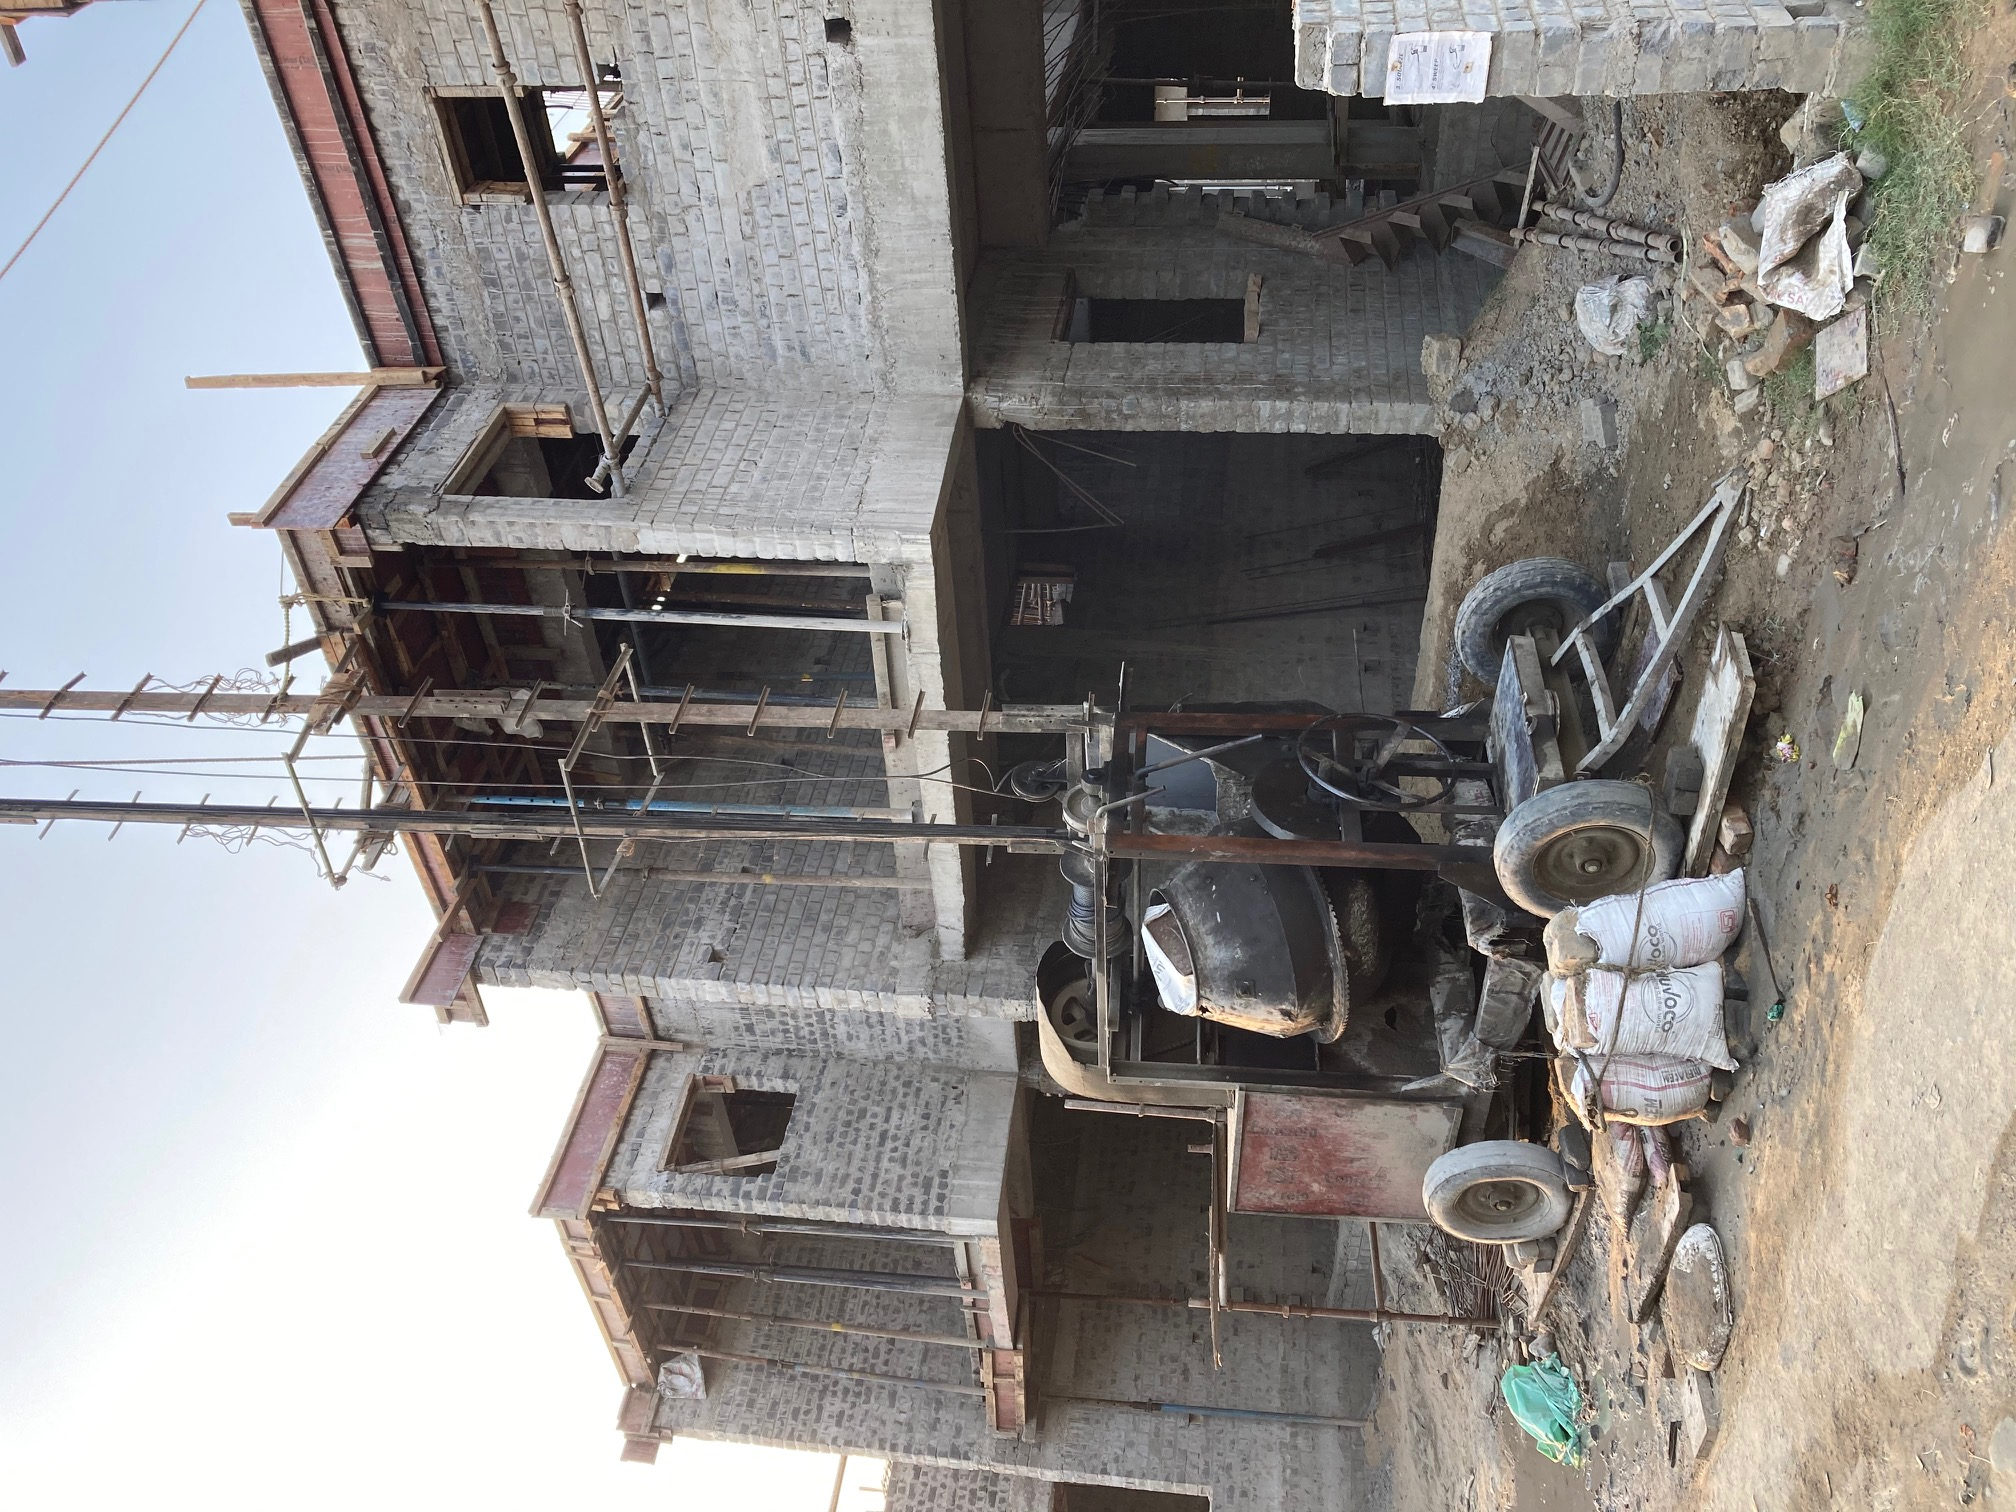 roof slab casting of row house no. 80 and 81 have been completed as on 03.04.2021